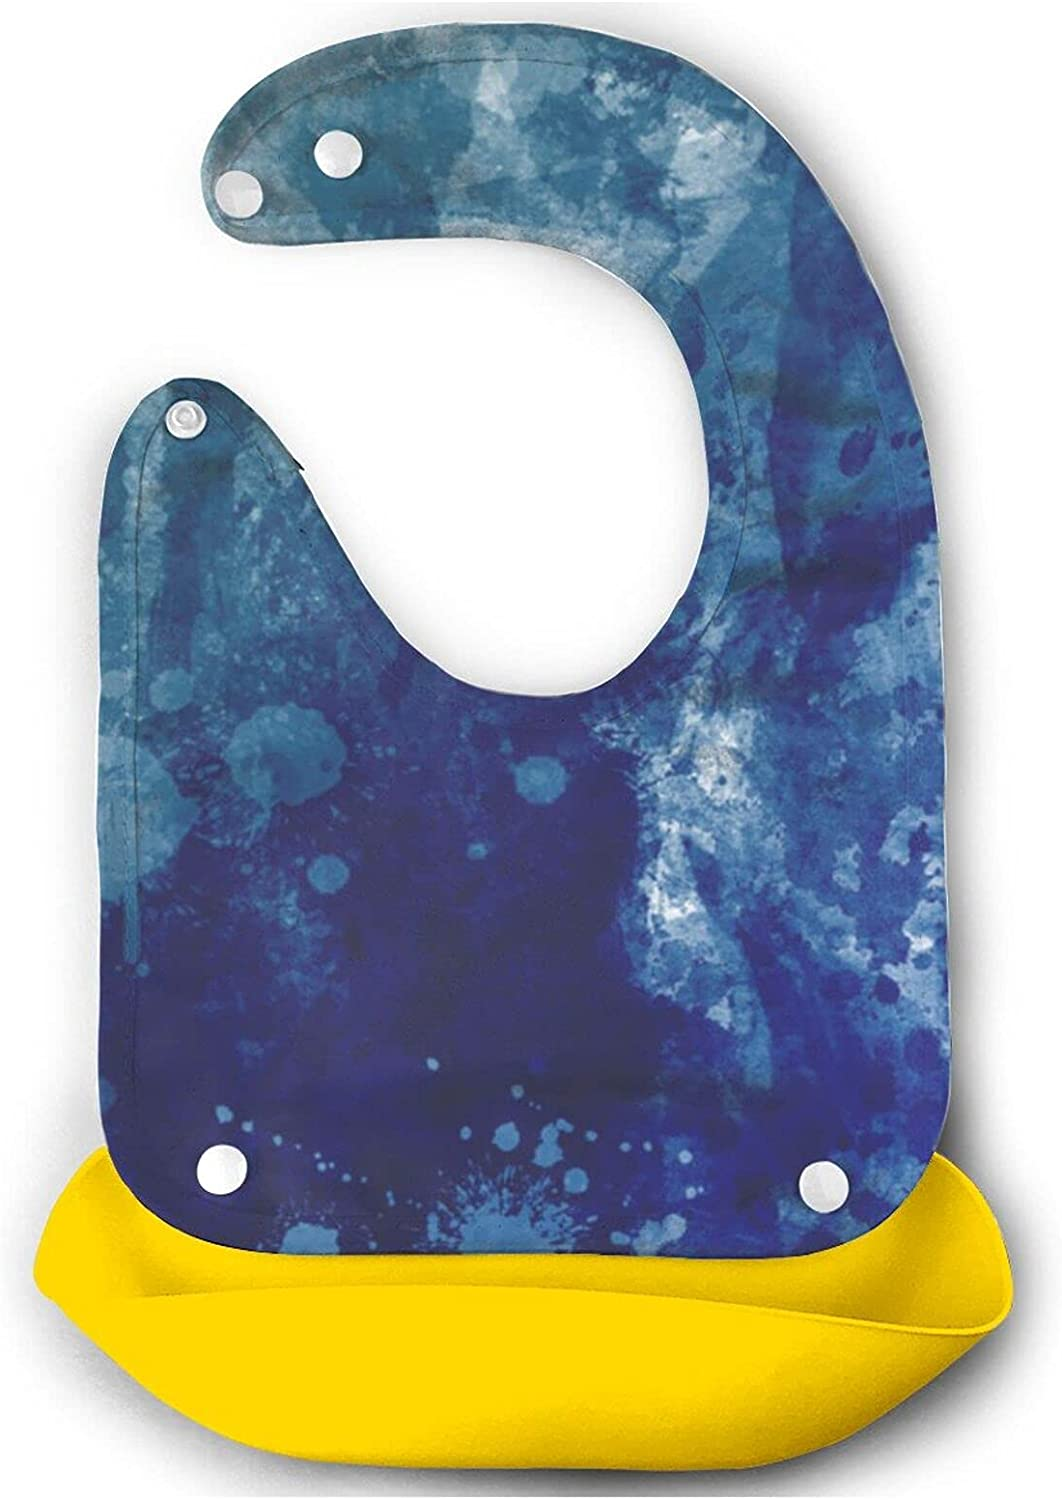 Beautiful Blue Watercolor Baby 70% OFF Outlet Bib Cute For Toddlers Babies M Animer and price revision